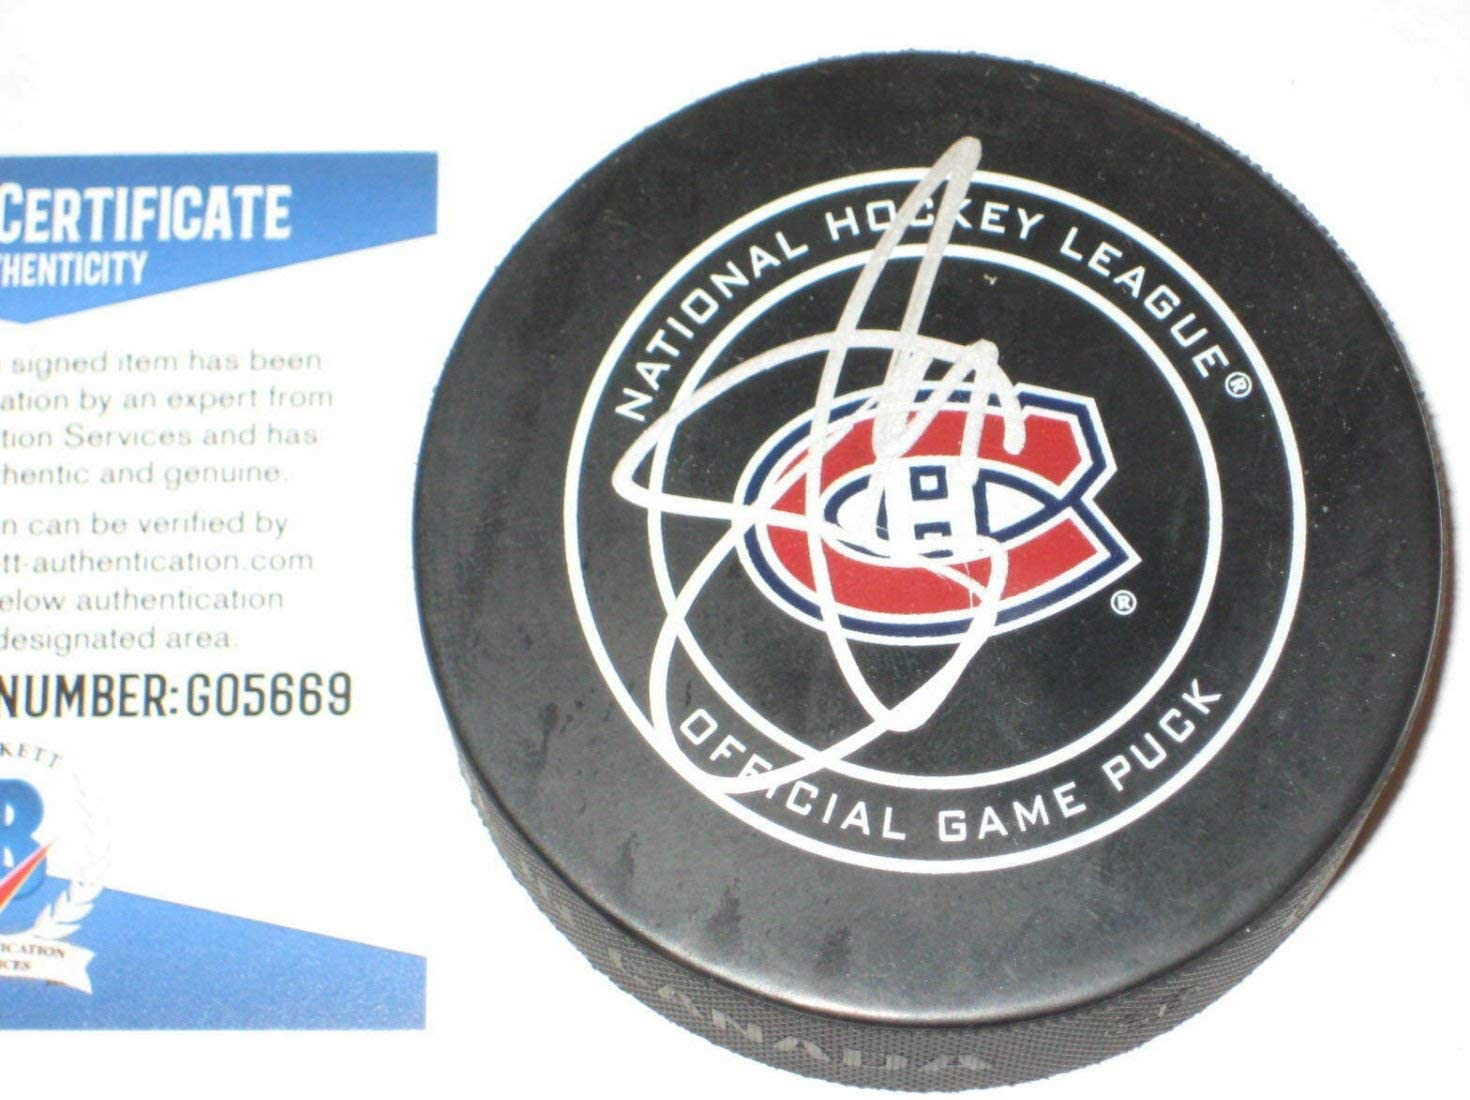 Shea Weber Autographed Signed Official Montreal Canadiens Game Puck With Beckett COA